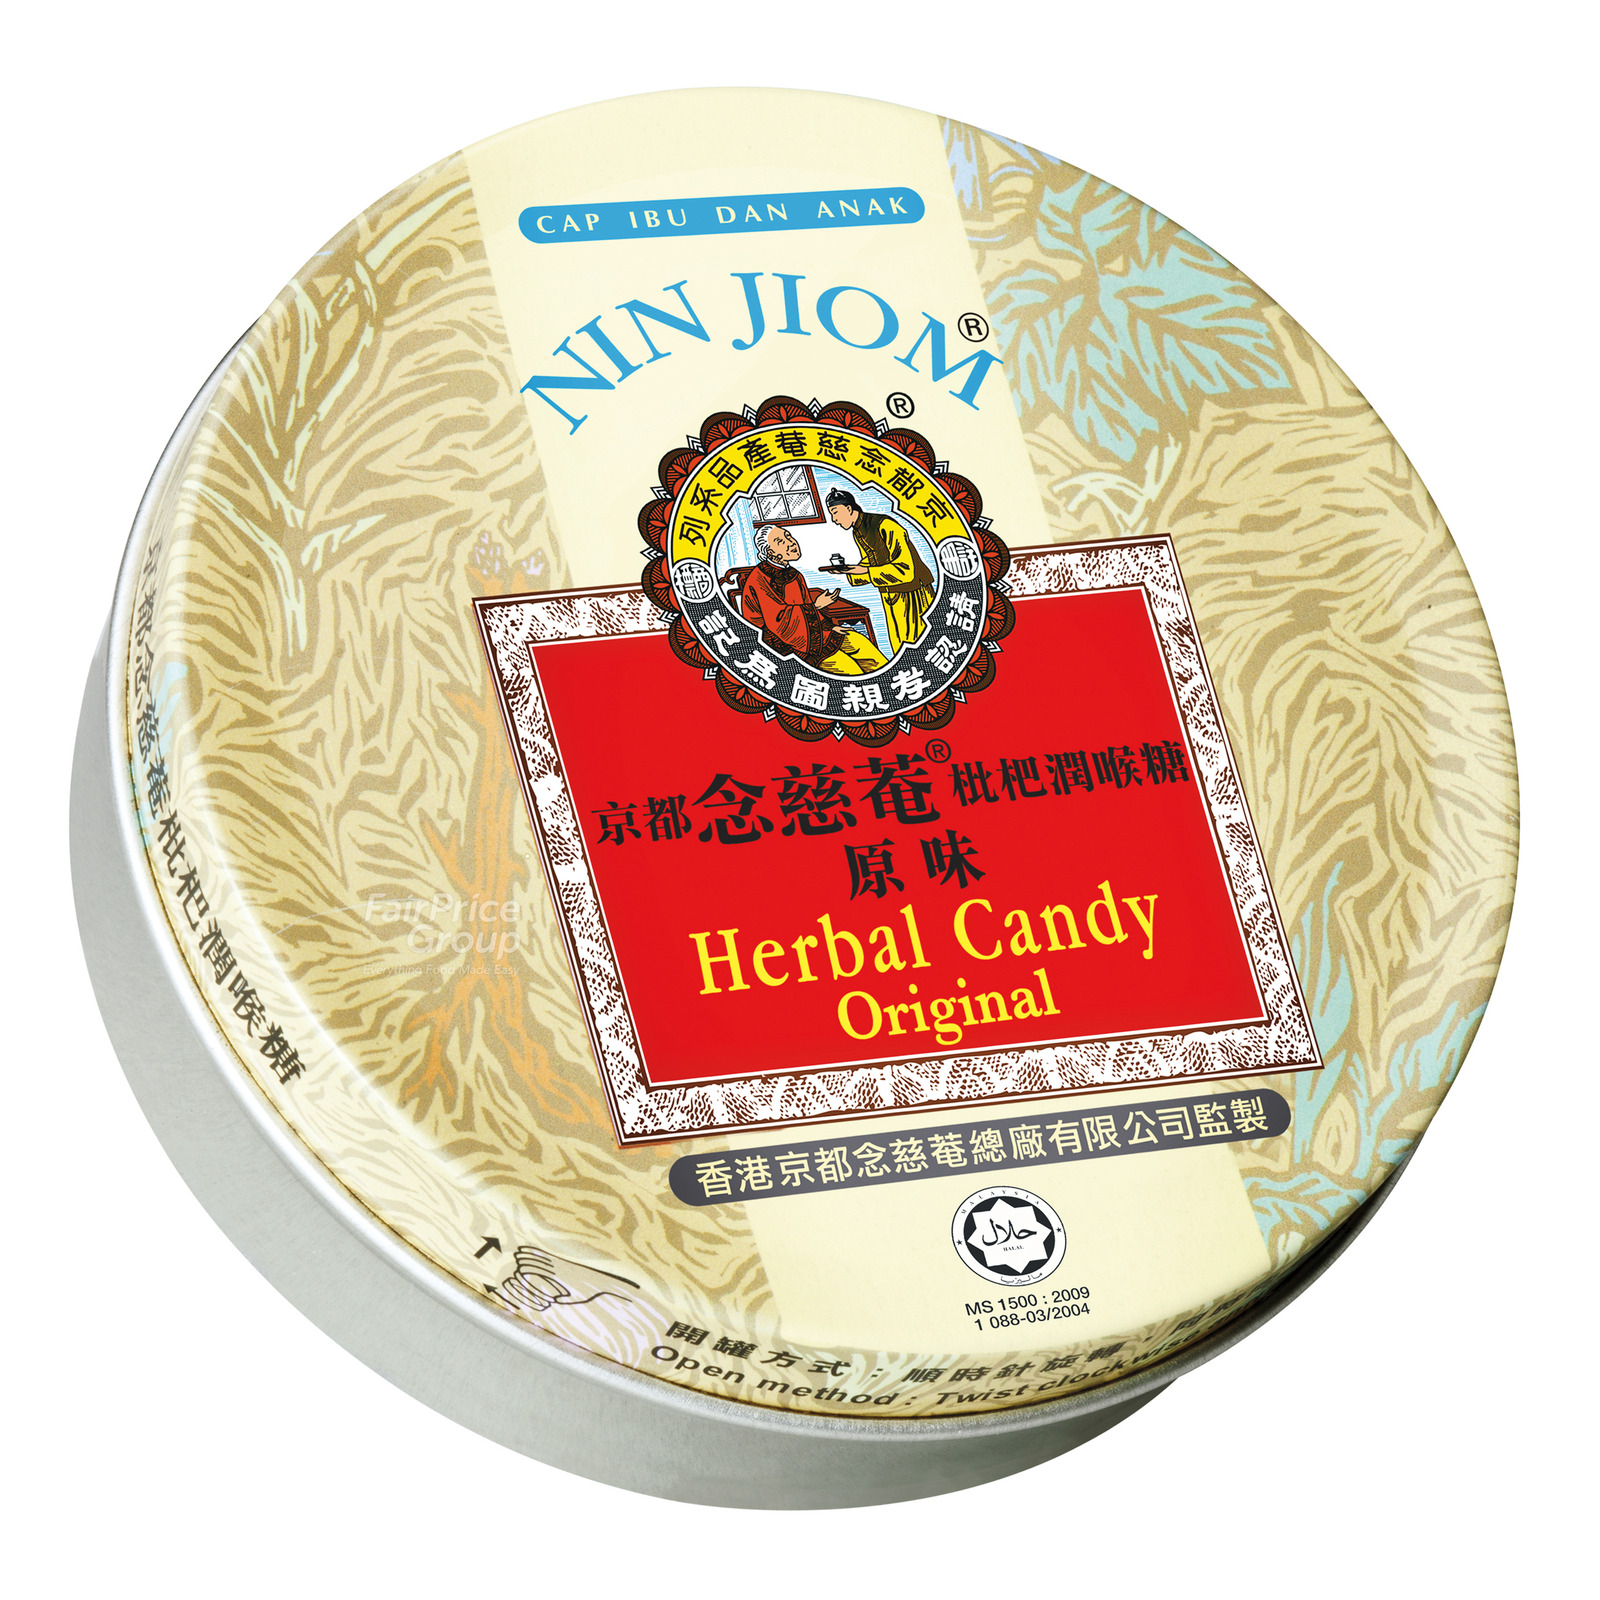 Nin Jiom Herbal Candy - Original (Tin)